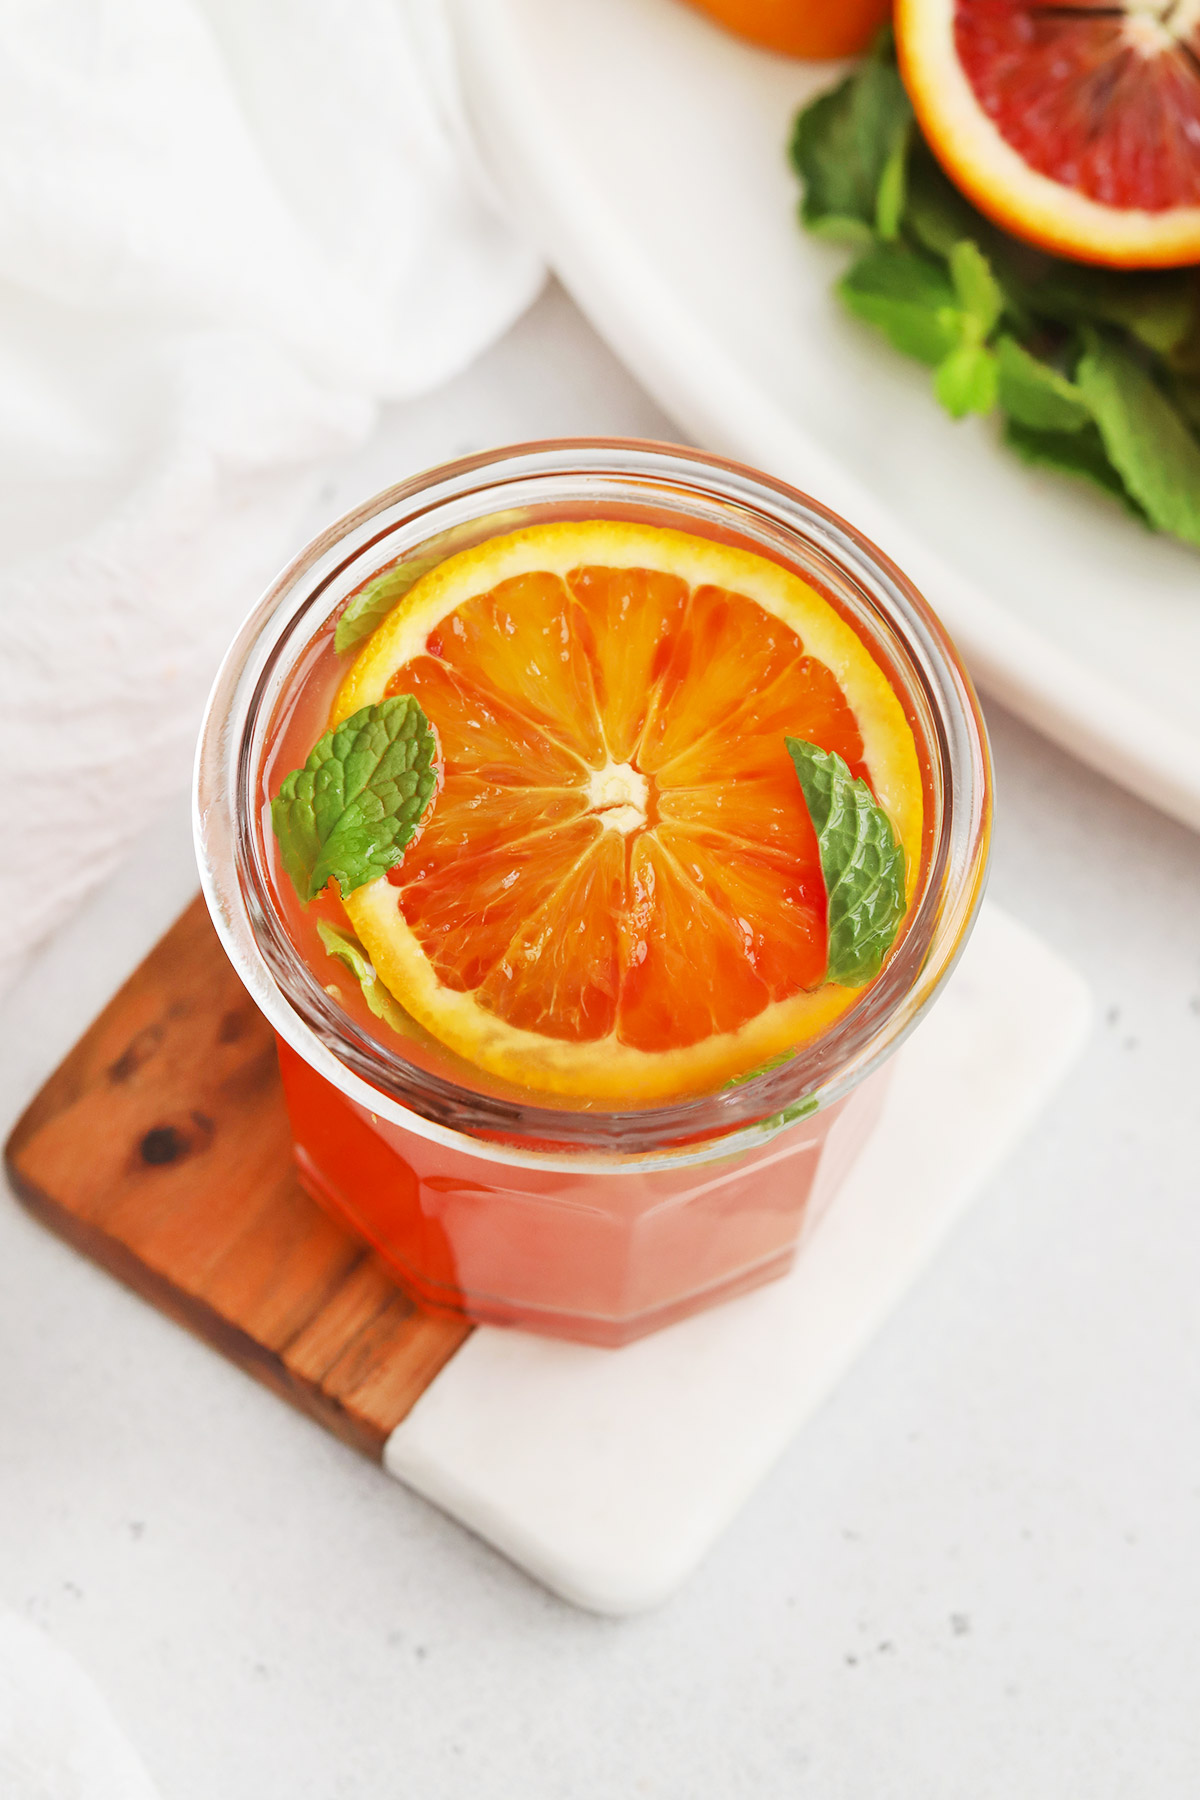 Front view of a blood orange mocktail garnished with fresh mint